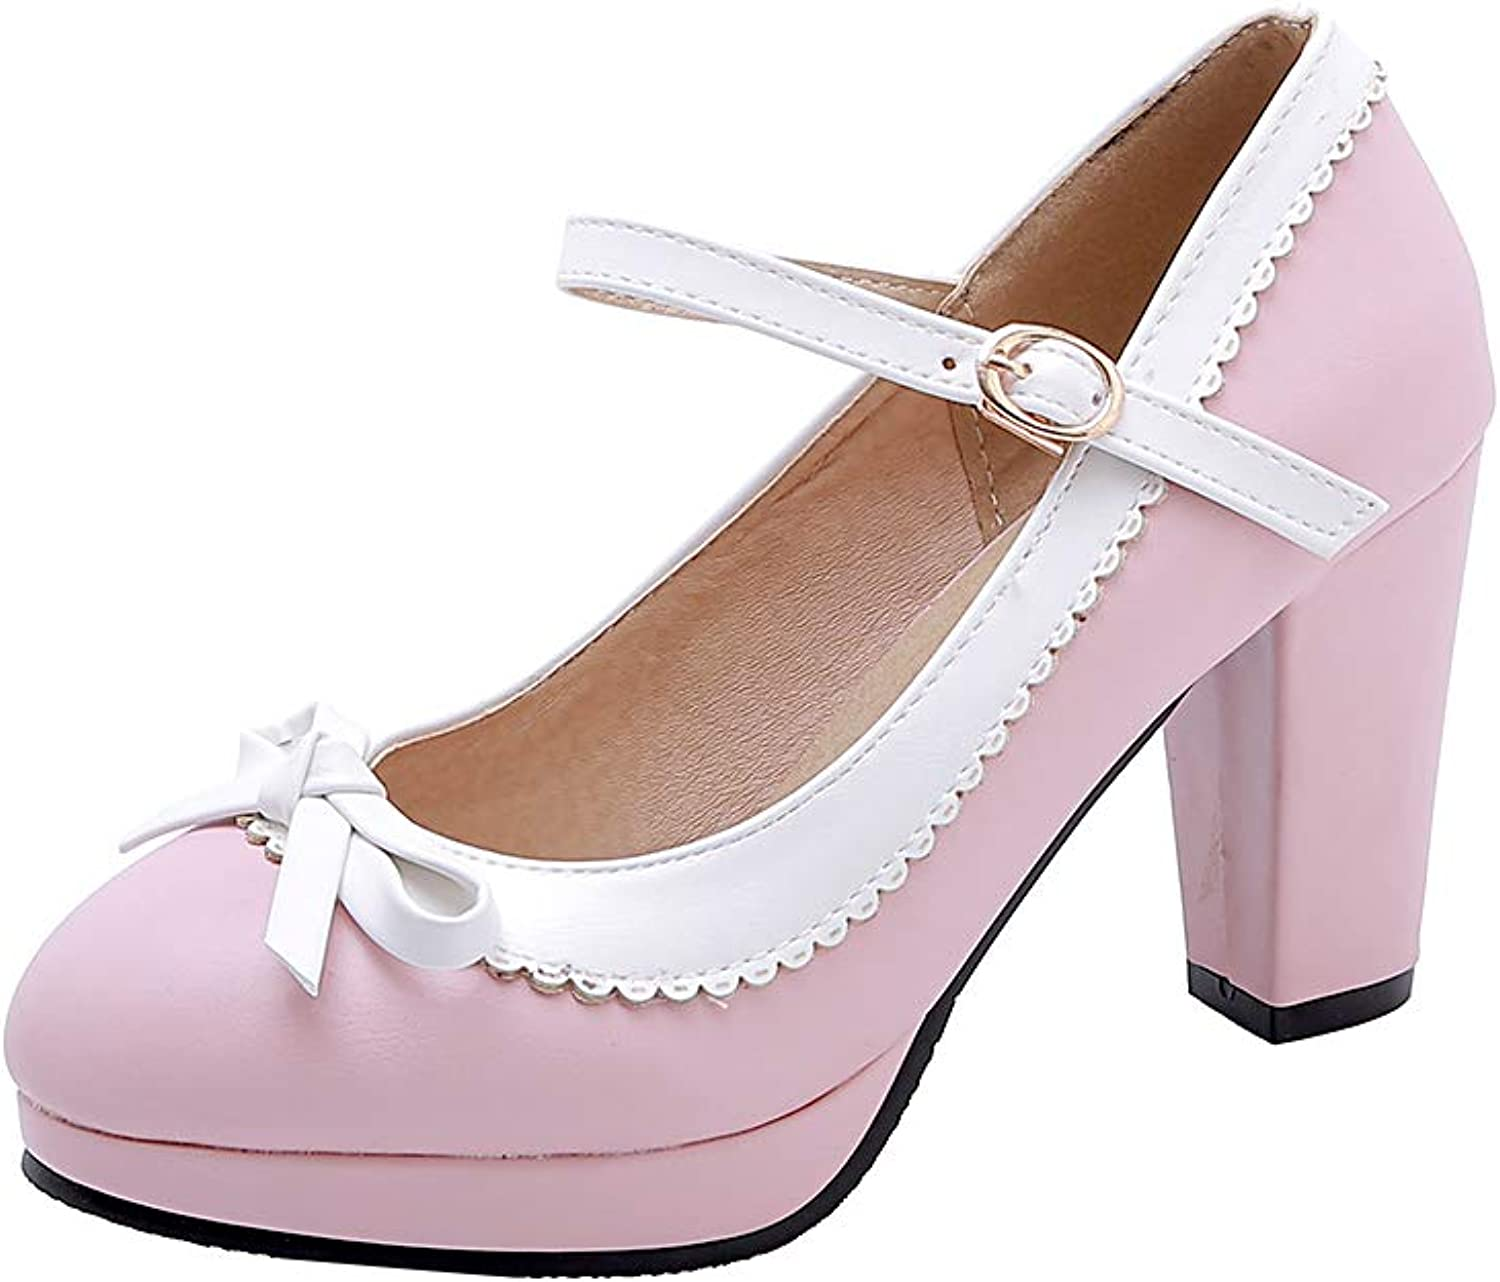 HILIB Woman's High Heel Tea Party shoes Cute Bowknot Mary Jane shoes